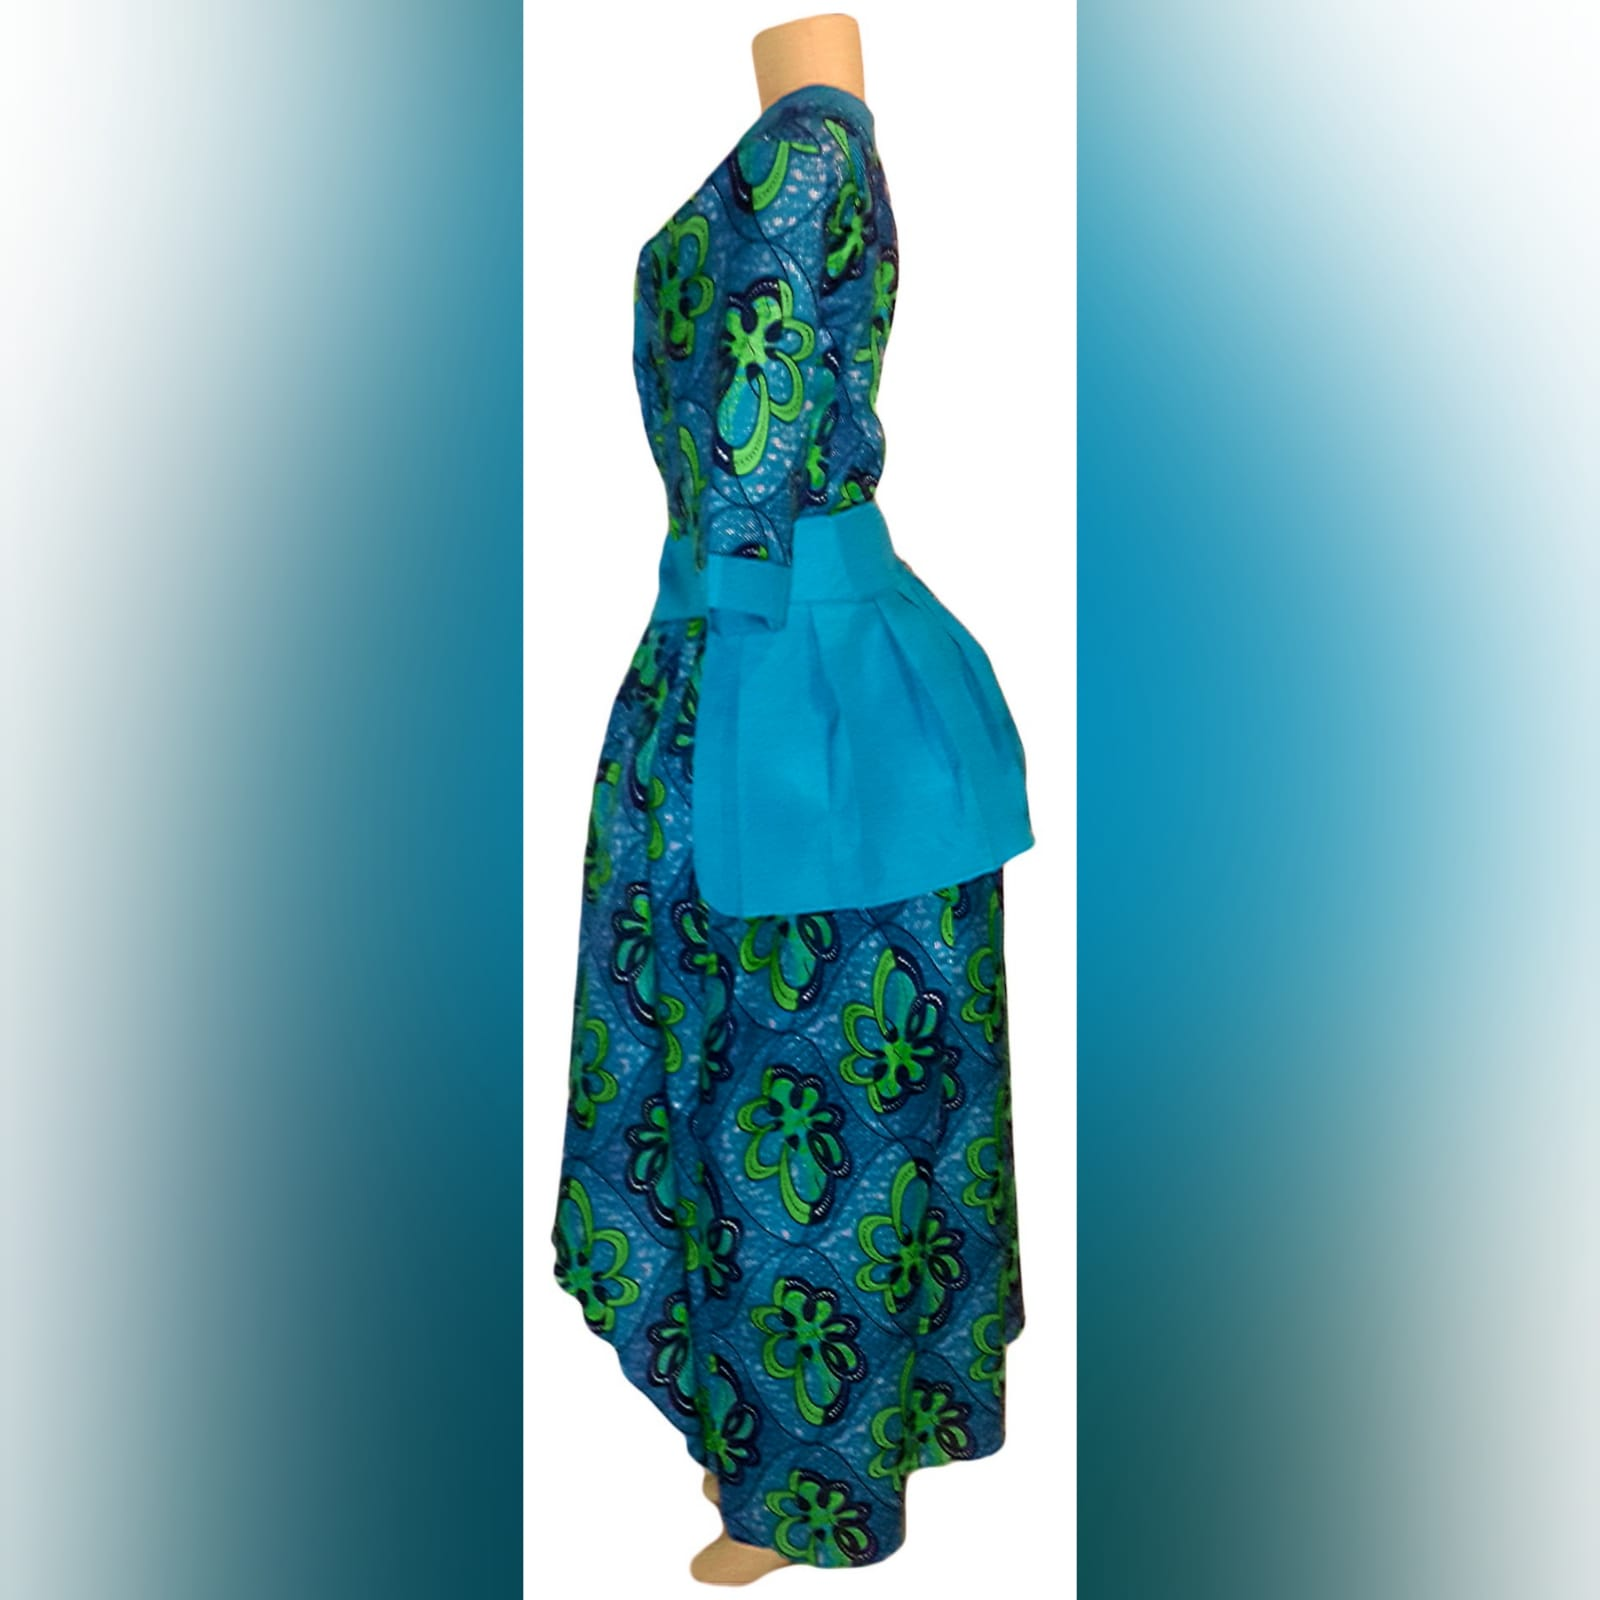 Modern traditional green and blue high low dress 2 modern traditional green and blue hi lo dress with a v neckline, 3/4 sleeves and a back peplum with a waistbelt. Matching doek.